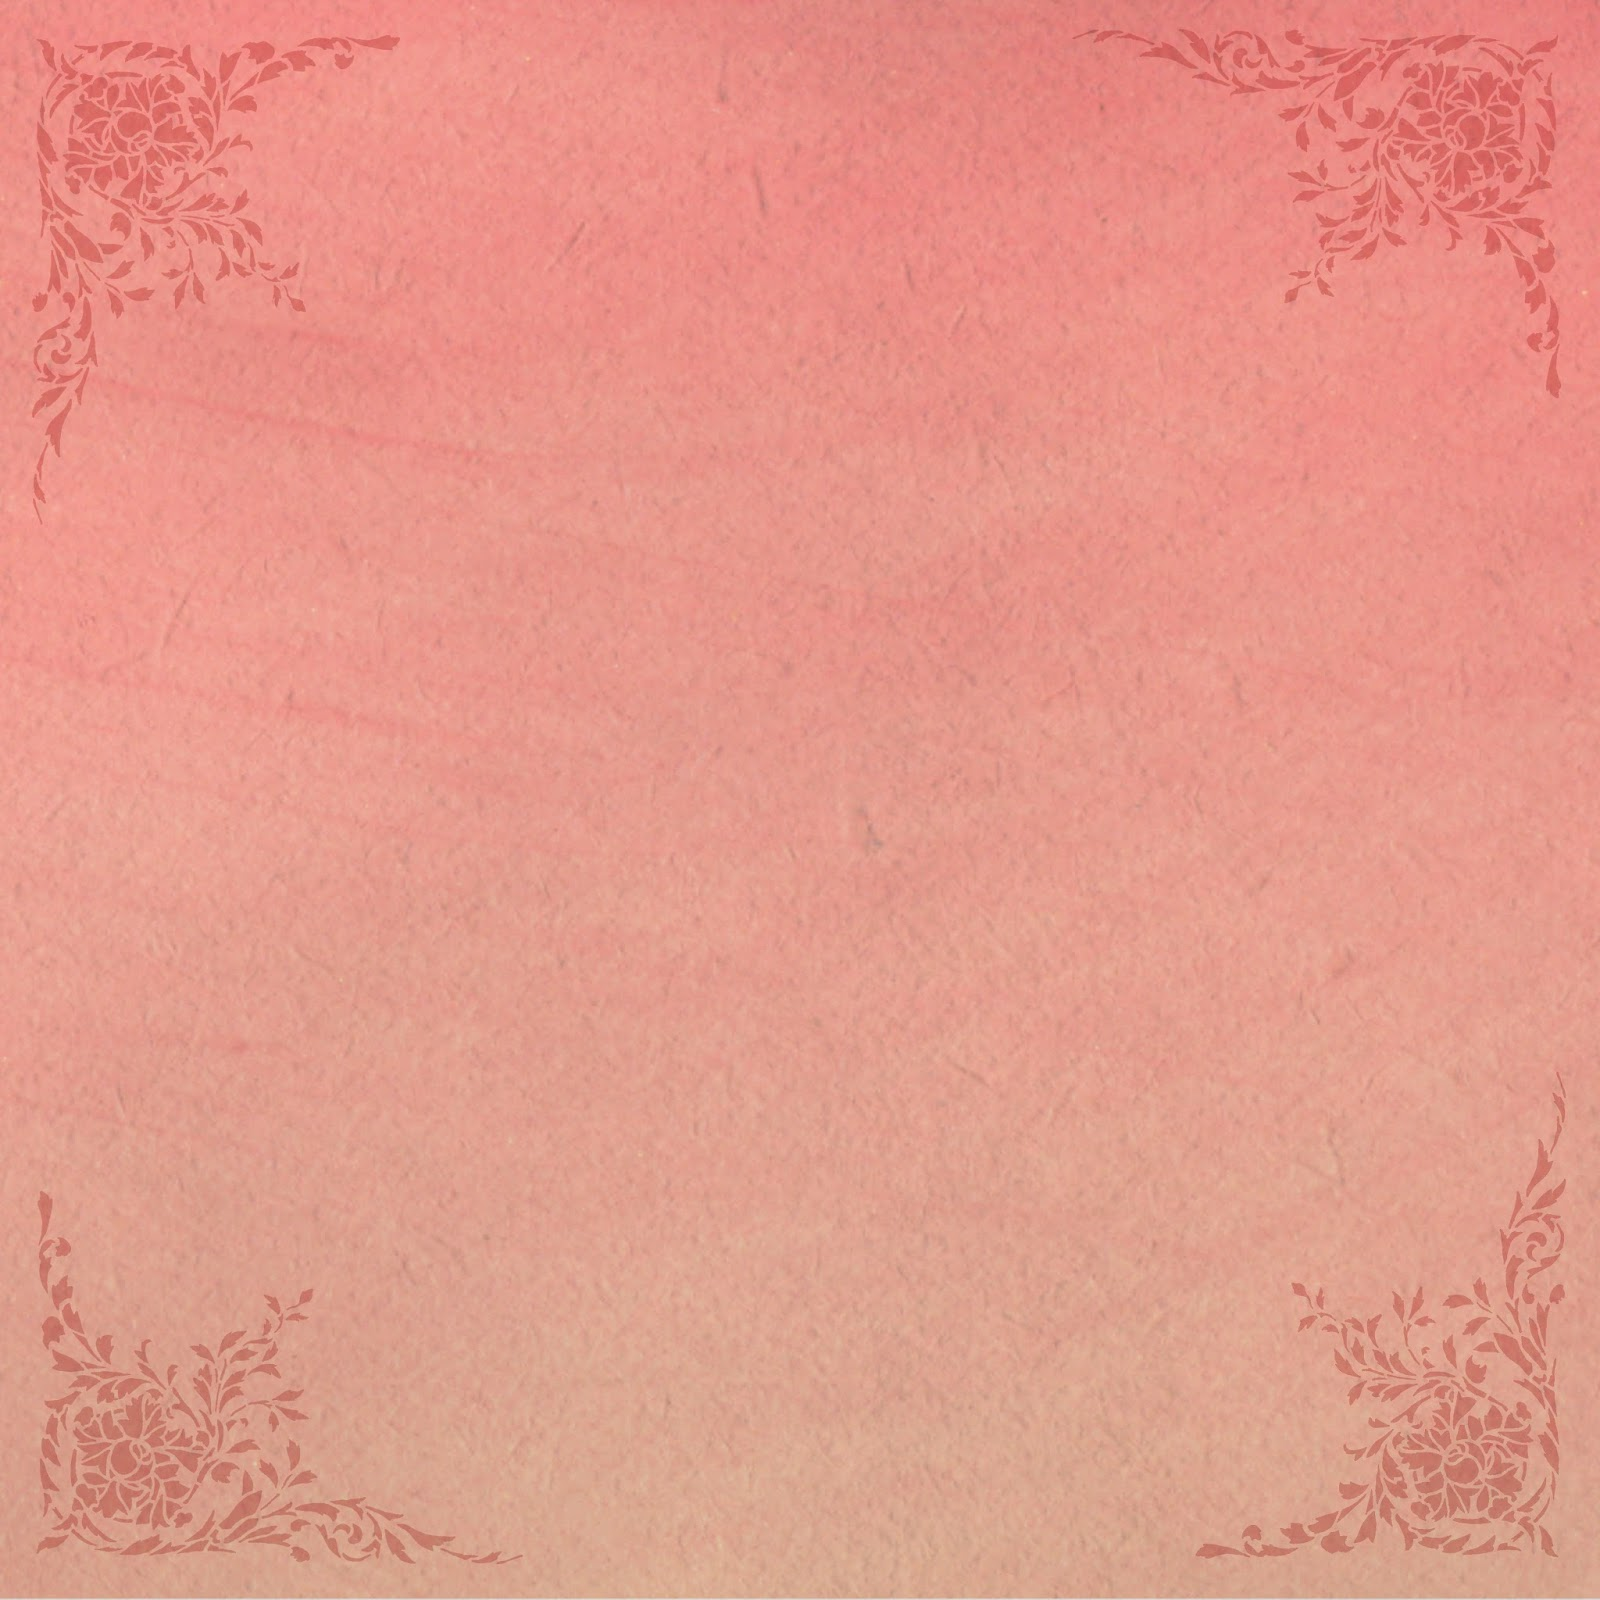 antique images  printable scrapbooking paper 12x12 pink